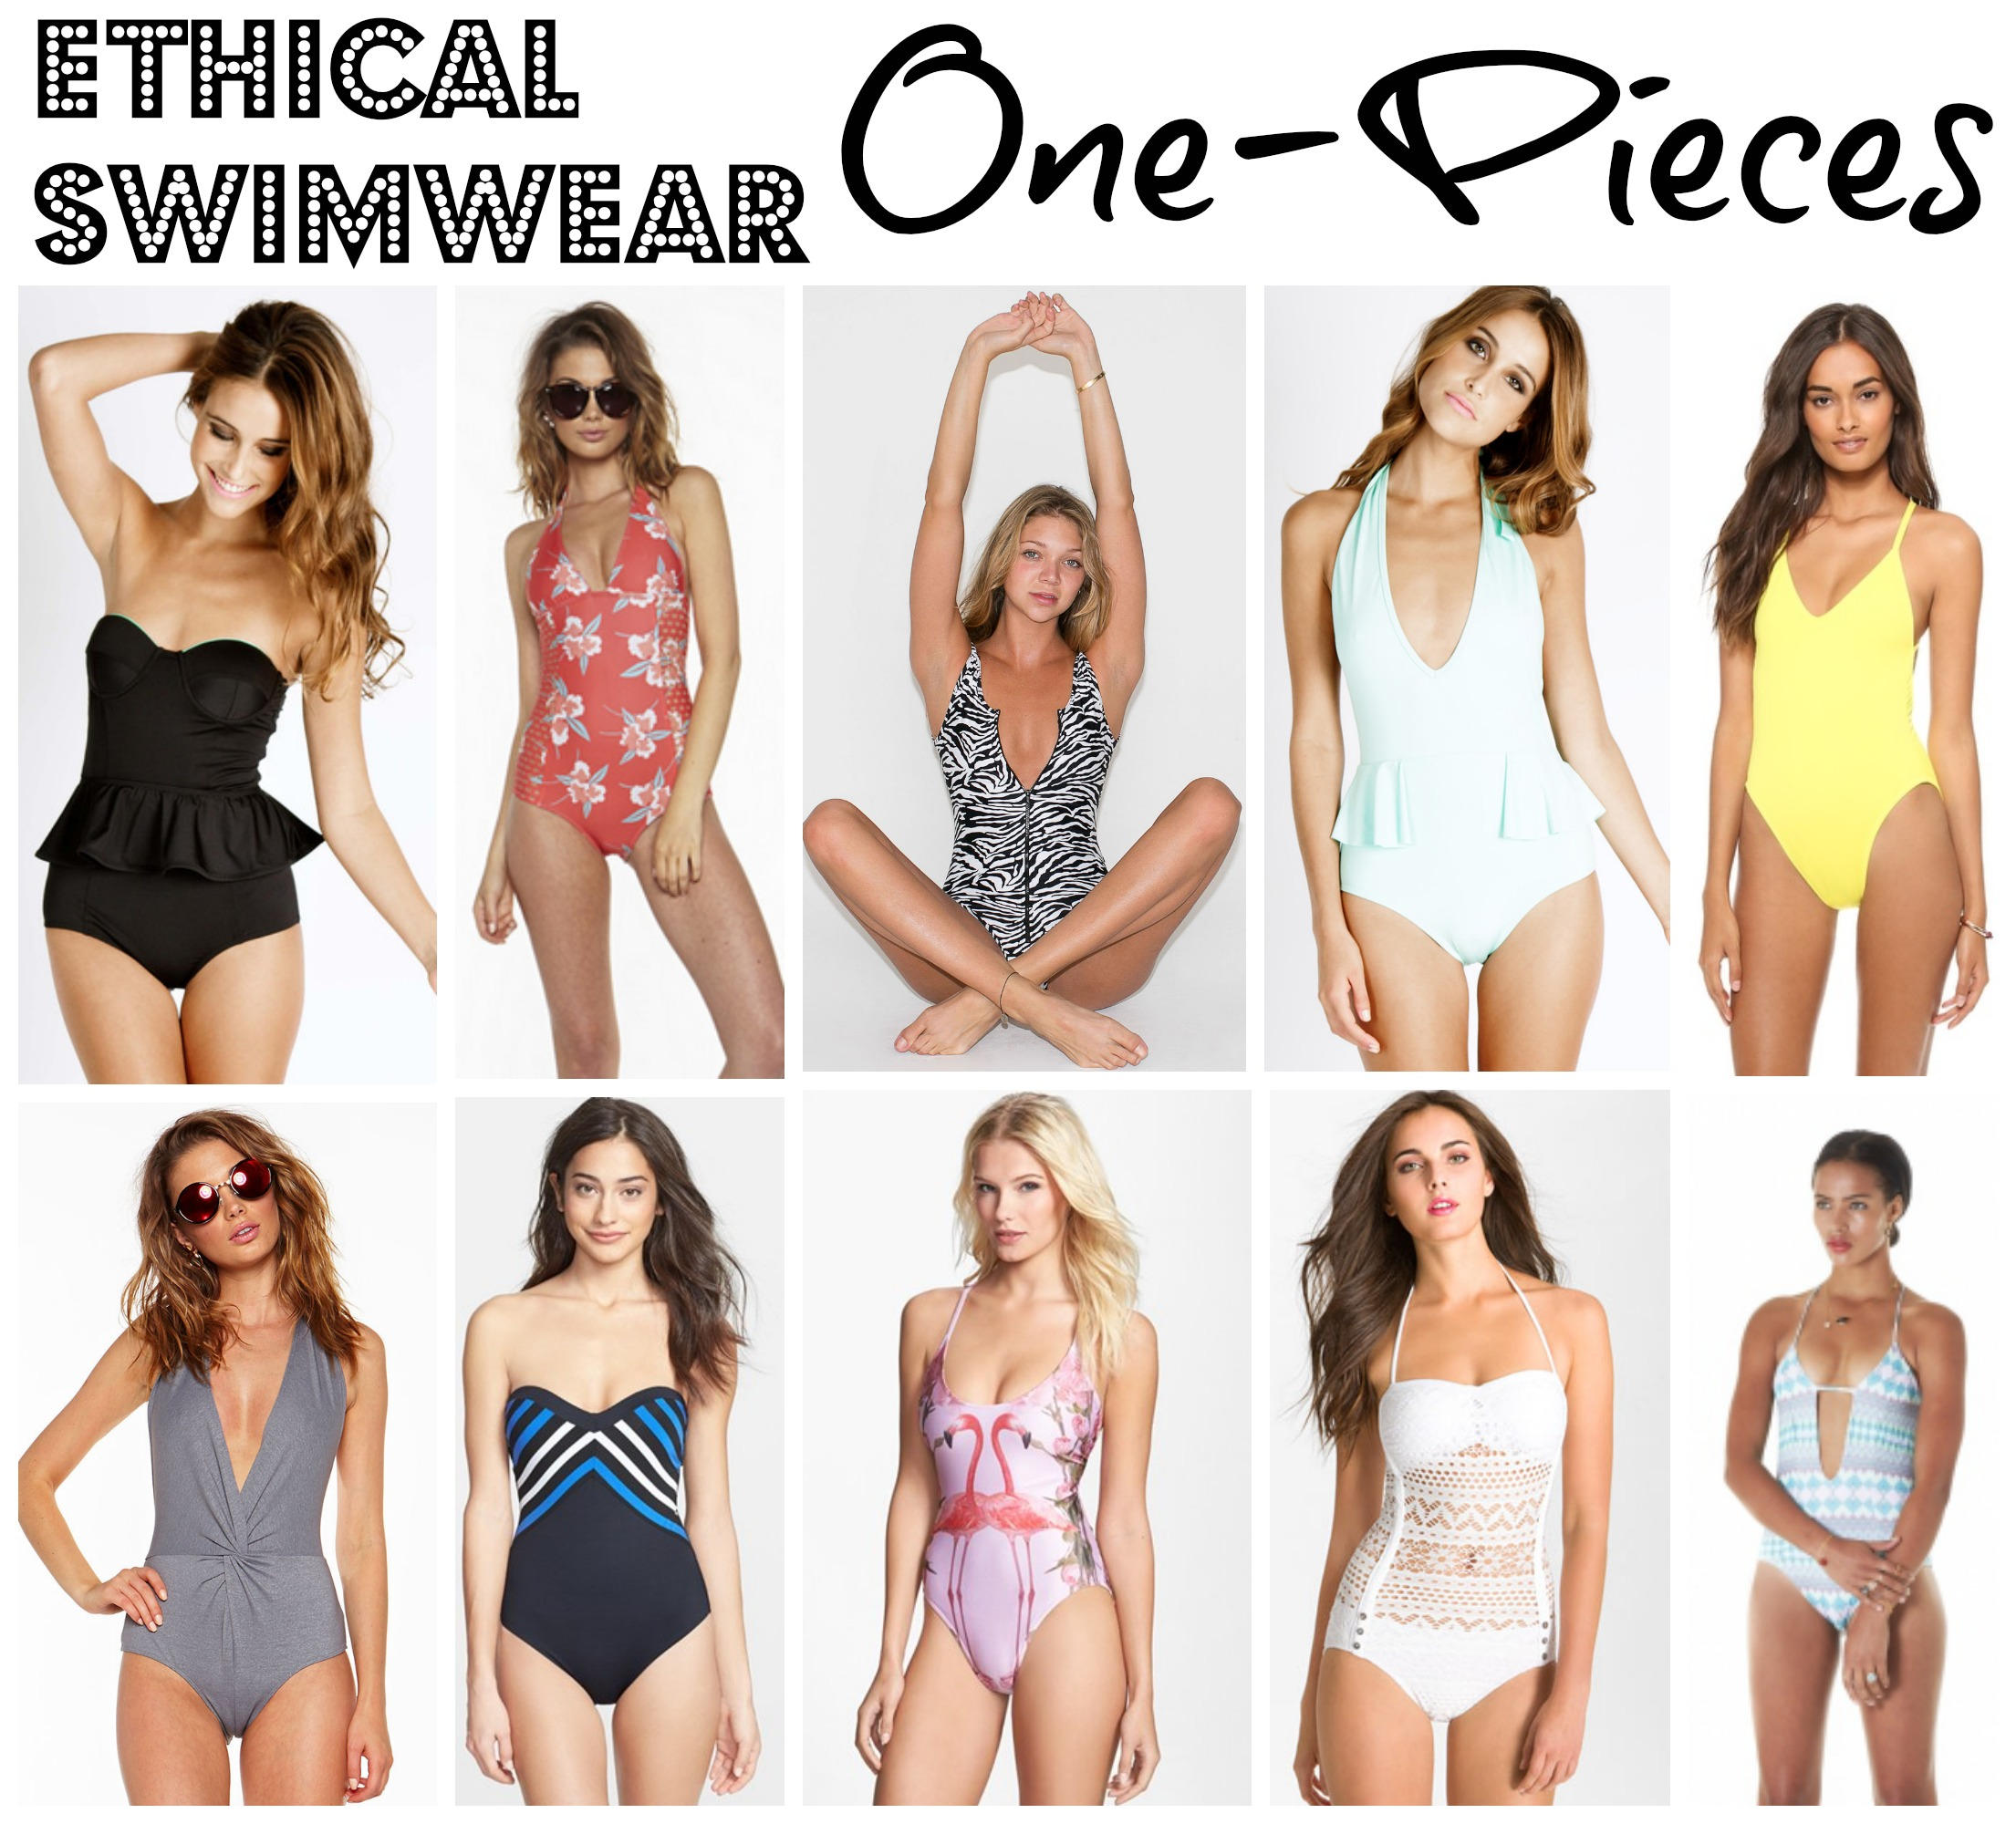 95aa394dd Ethical Swimwear: The One-Piece - Made-To-Travel.com